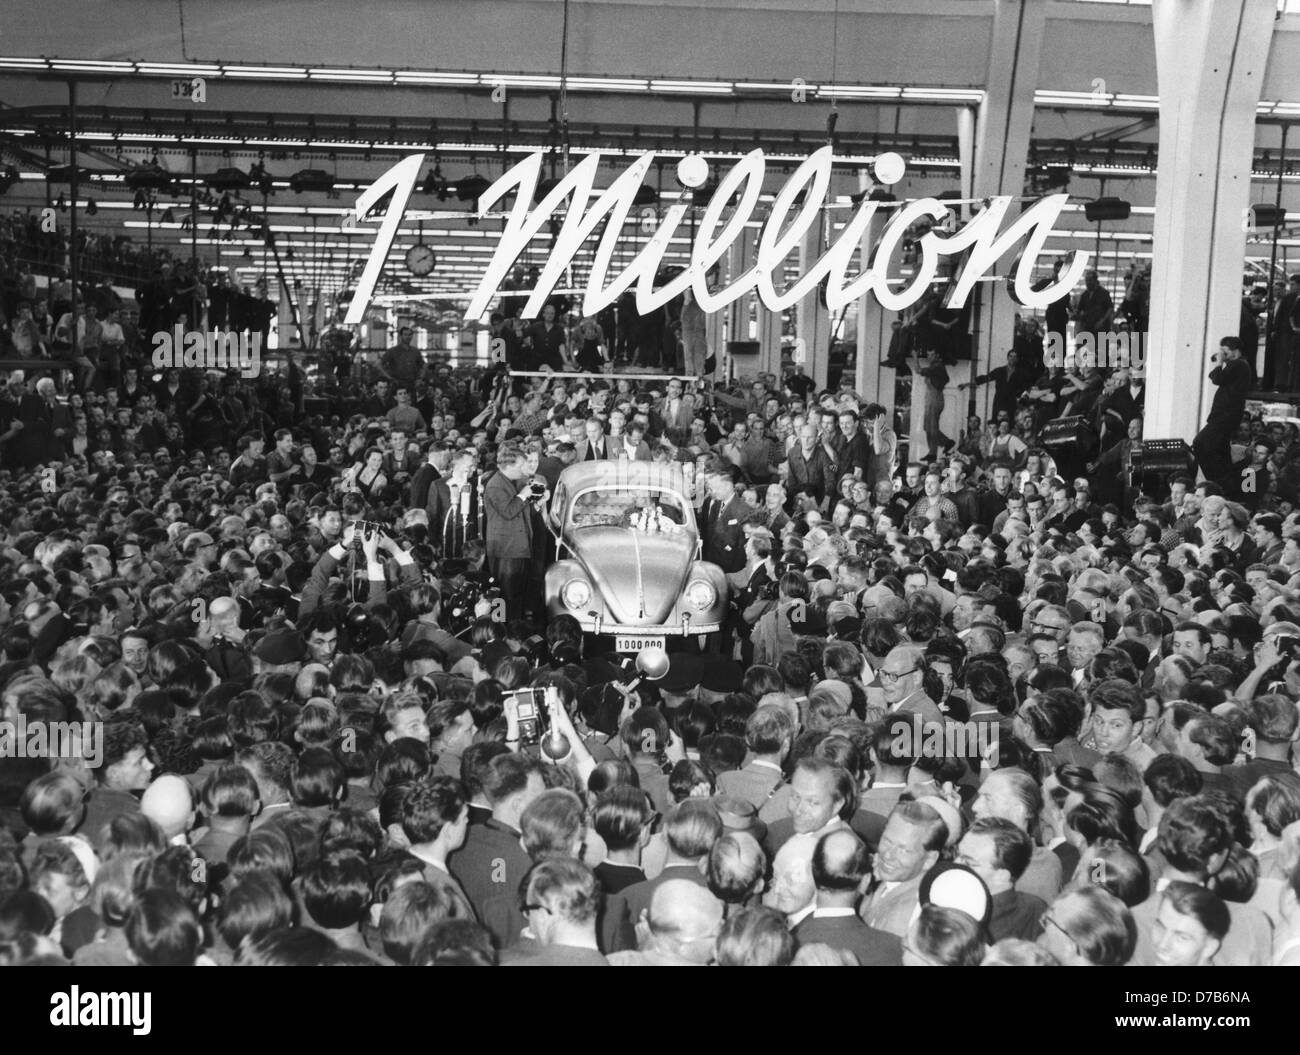 The one millionth VW Käfer is presented in Wolfsburg on the 5th of August in 1955. - Stock Image